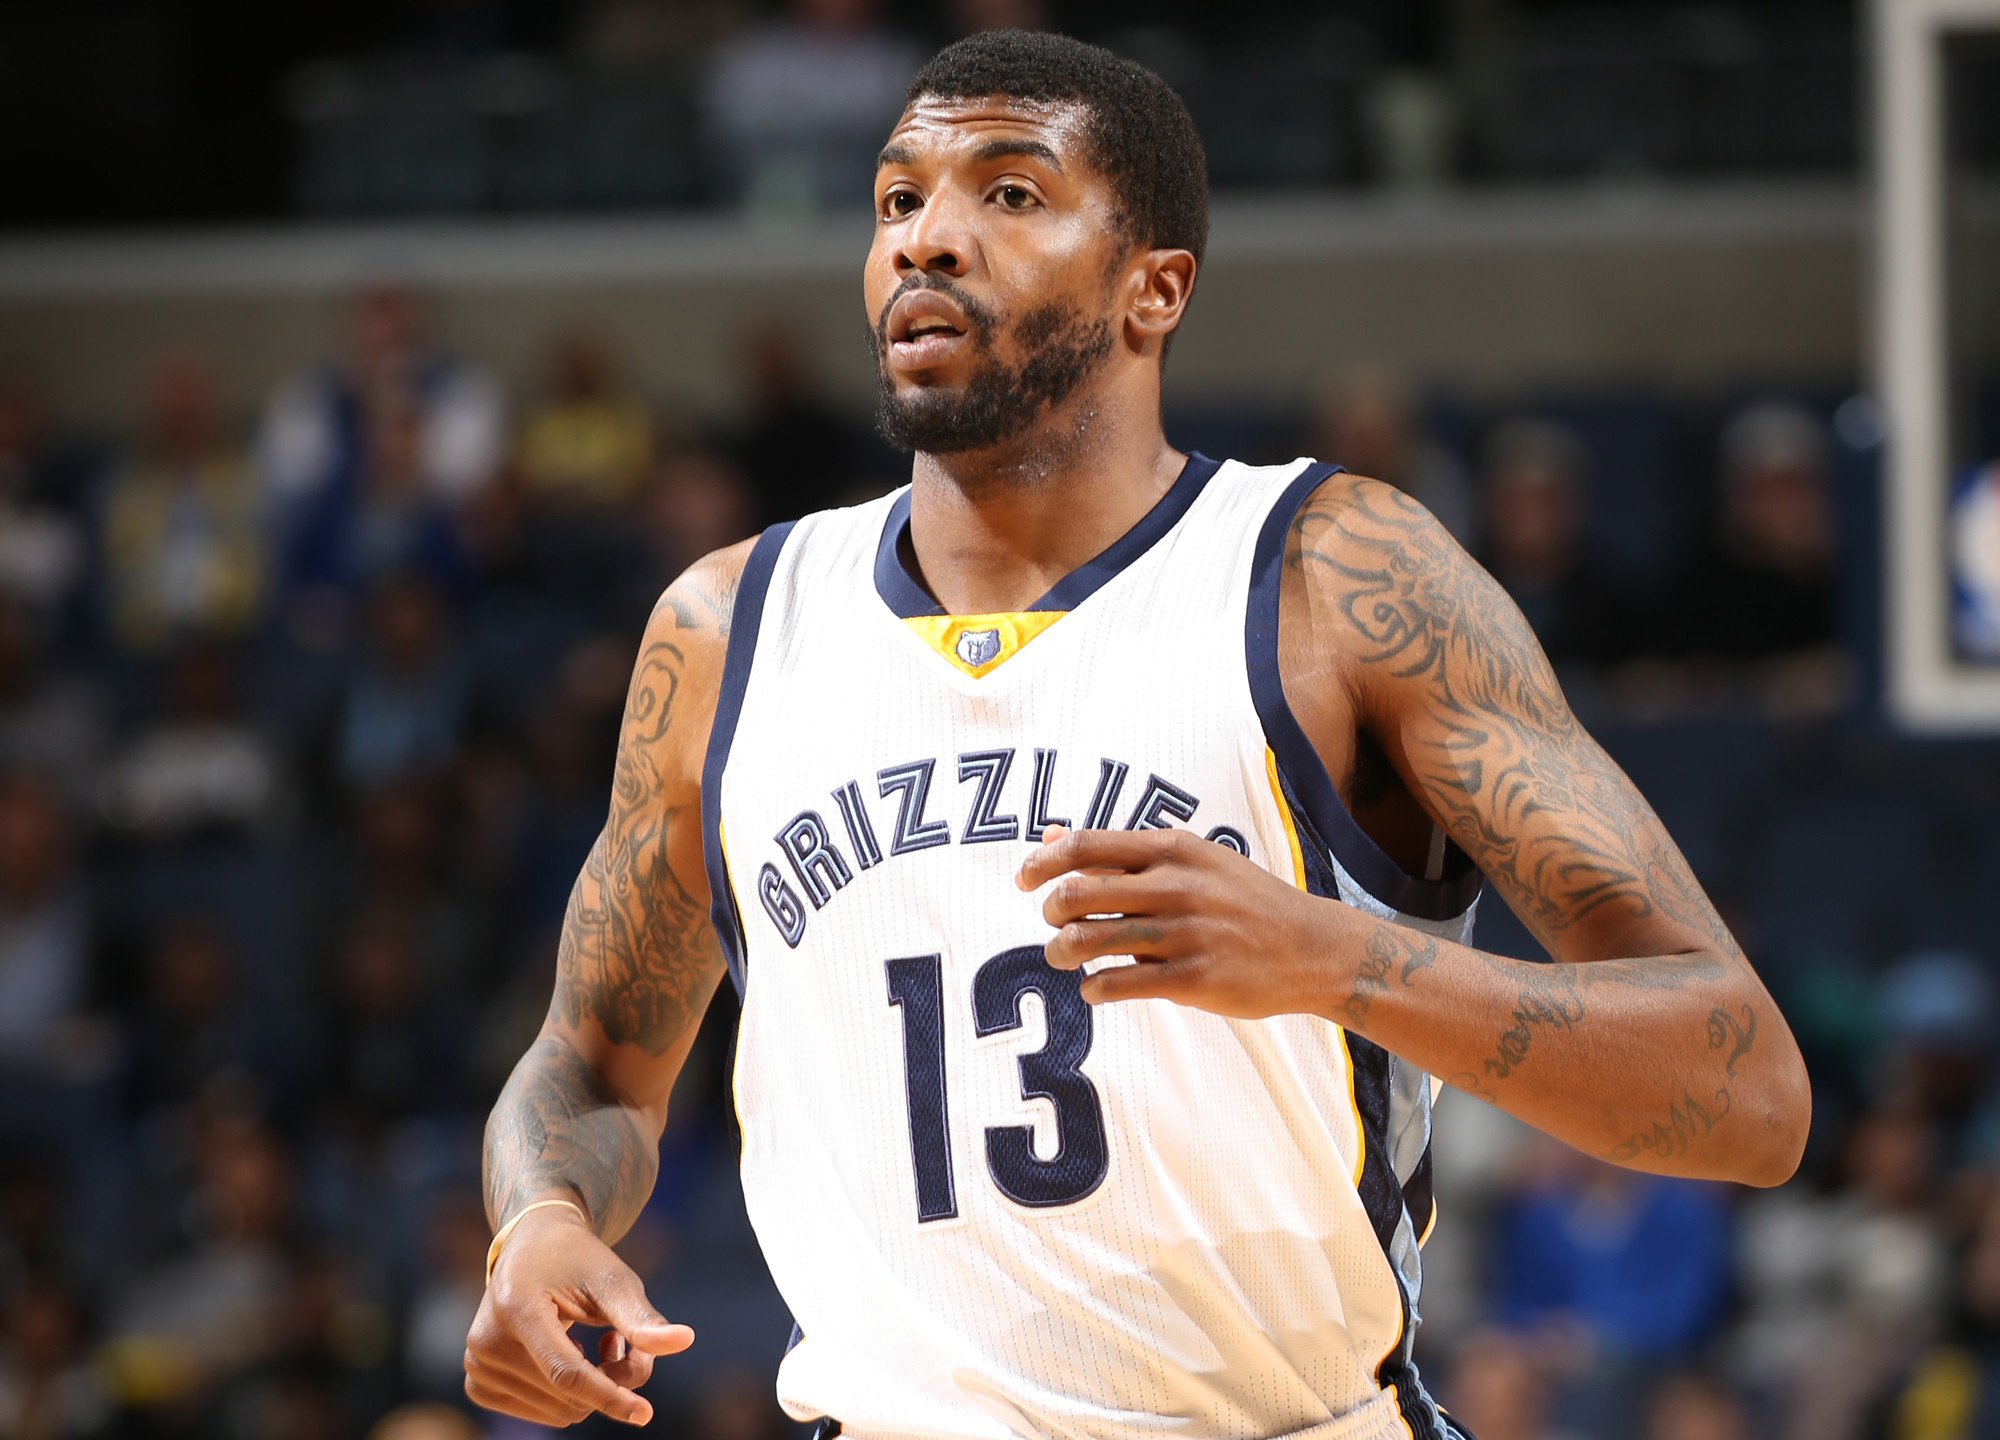 Tyrus Thomas #13 of the Memphis Grizzlies during the game against the Denver Nuggets on January 29, 2015 at FedExForum in Memphis, Tennessee.